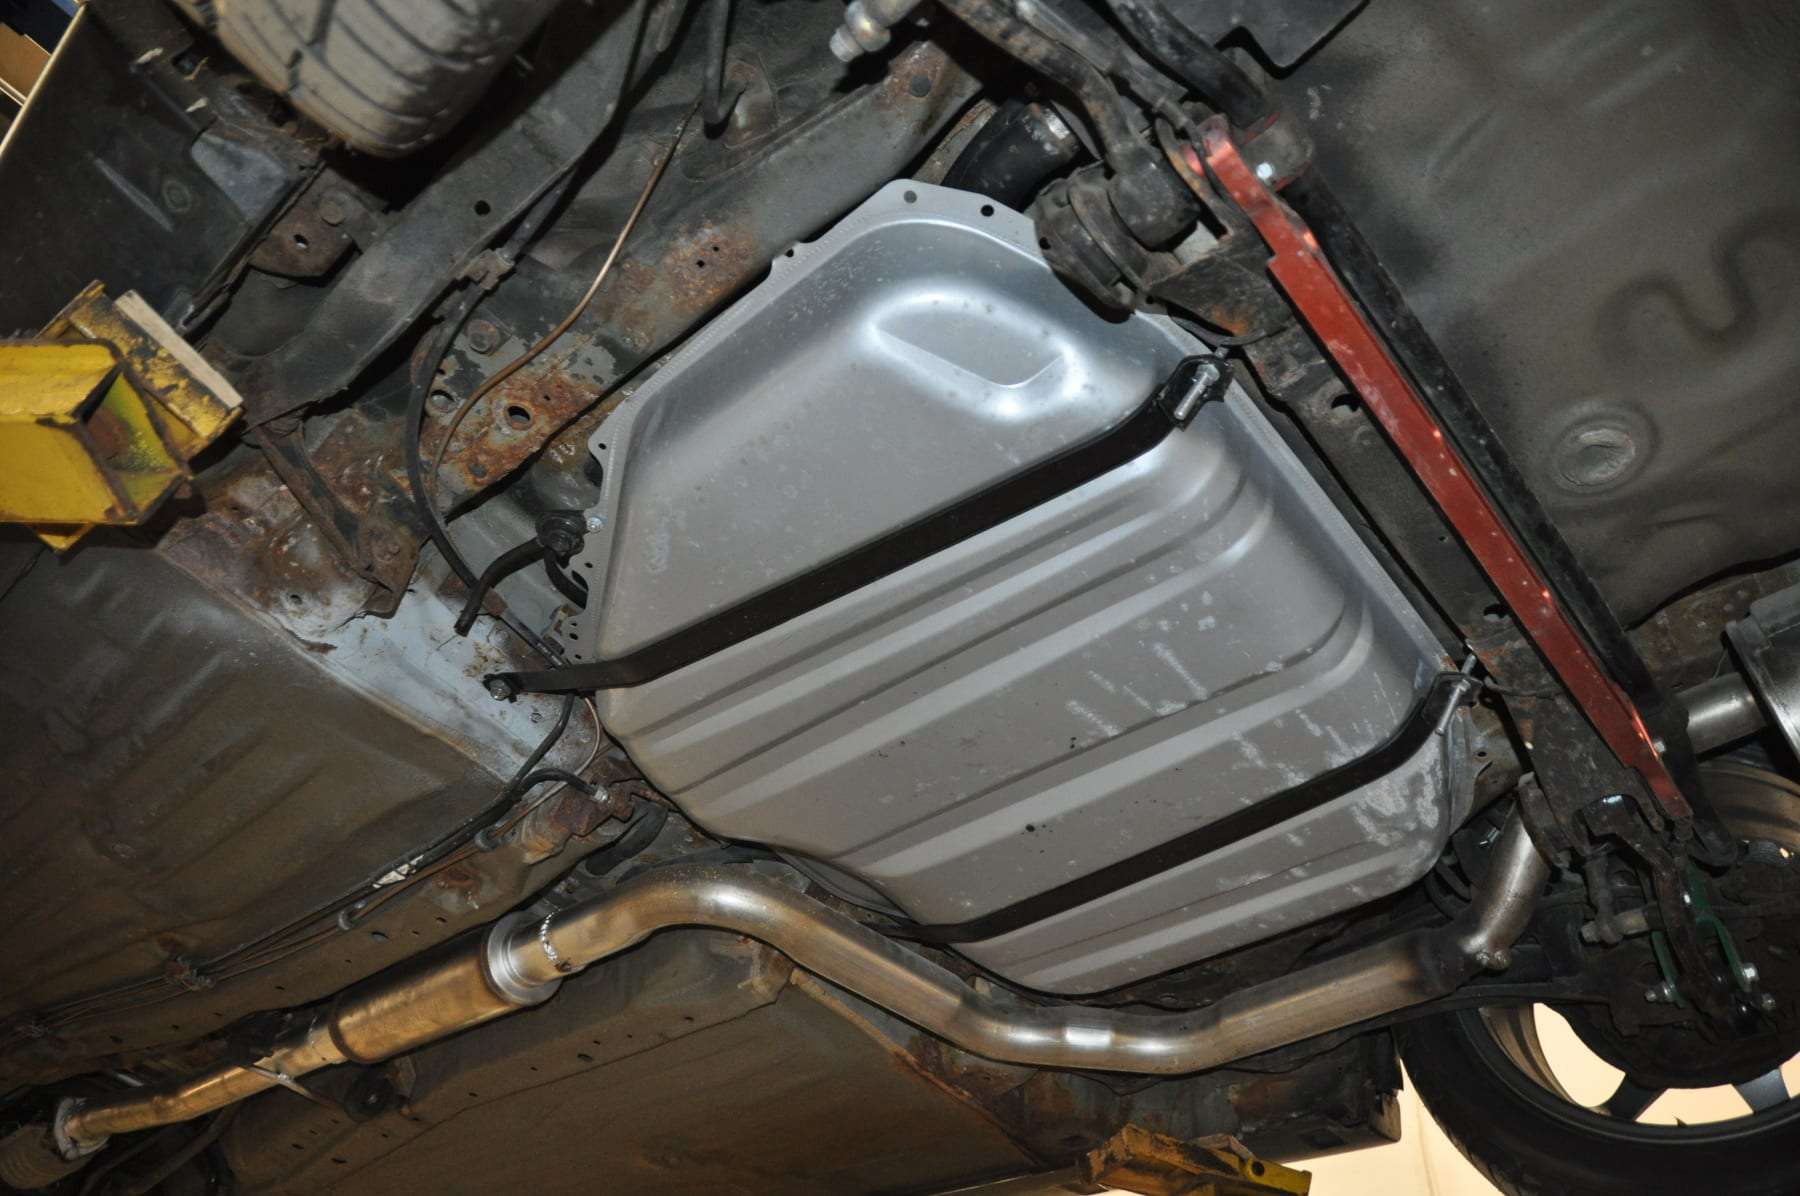 integra gs-r undercarriage for sale fuel tank